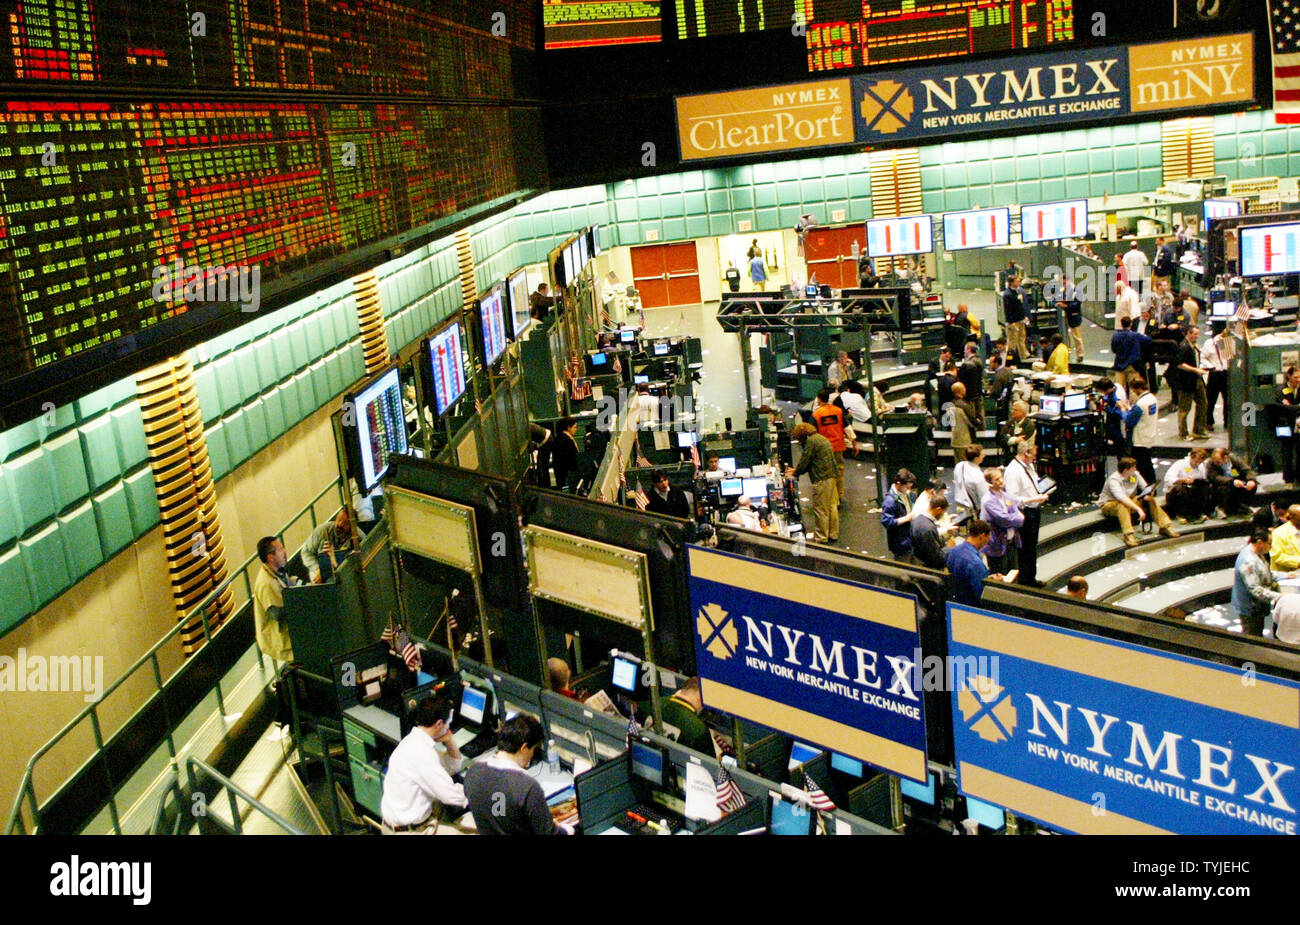 Traders conduct business on the floor of the NYMEX after light